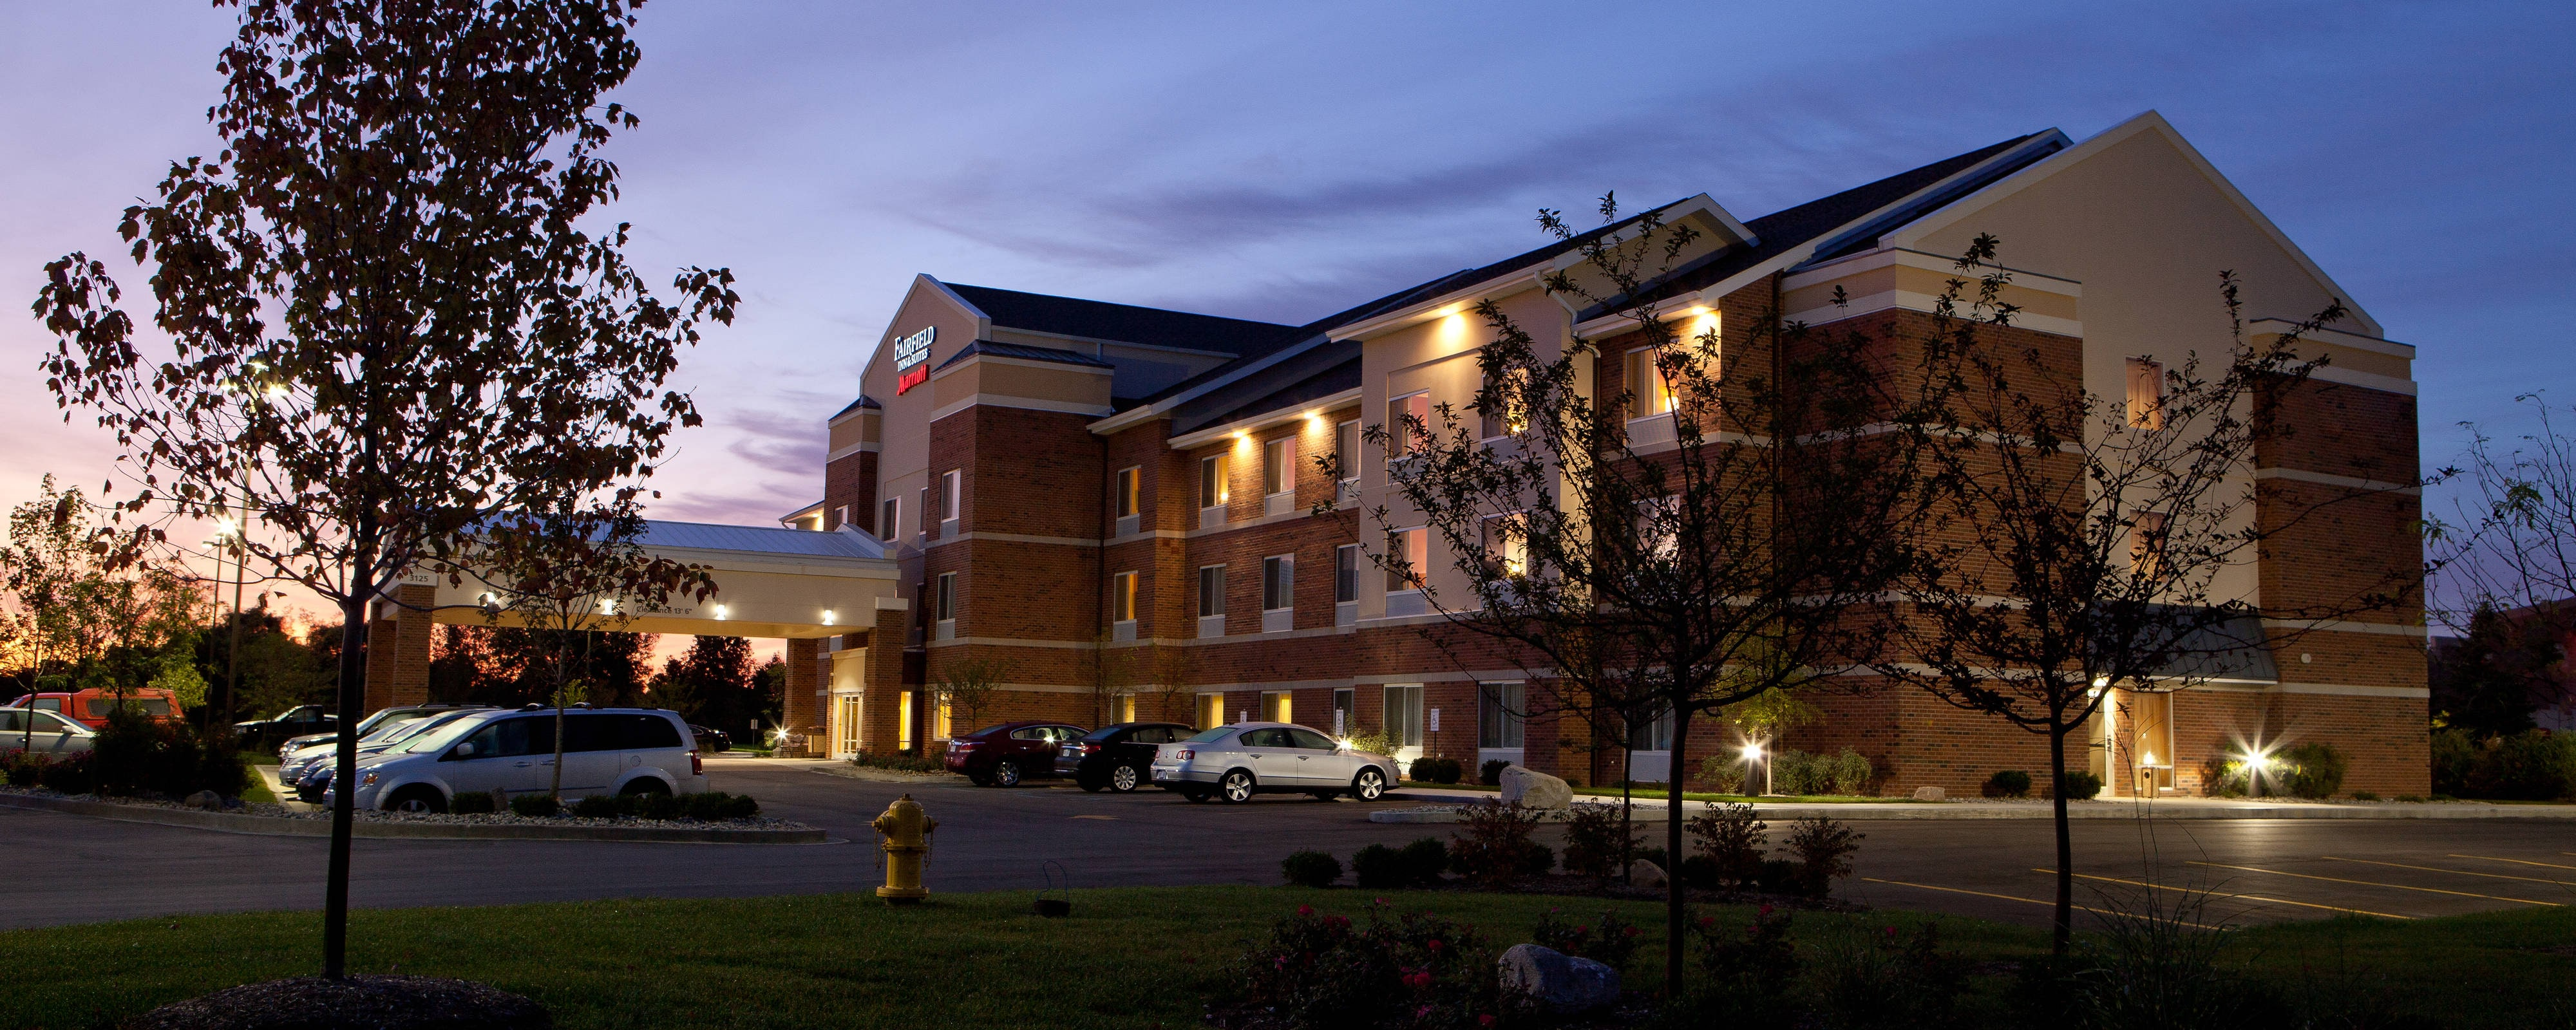 Fenton Hotel Near Silver Lake Michigan Fairfield Inn Suites Rh Marriott Com Hotels In Mi